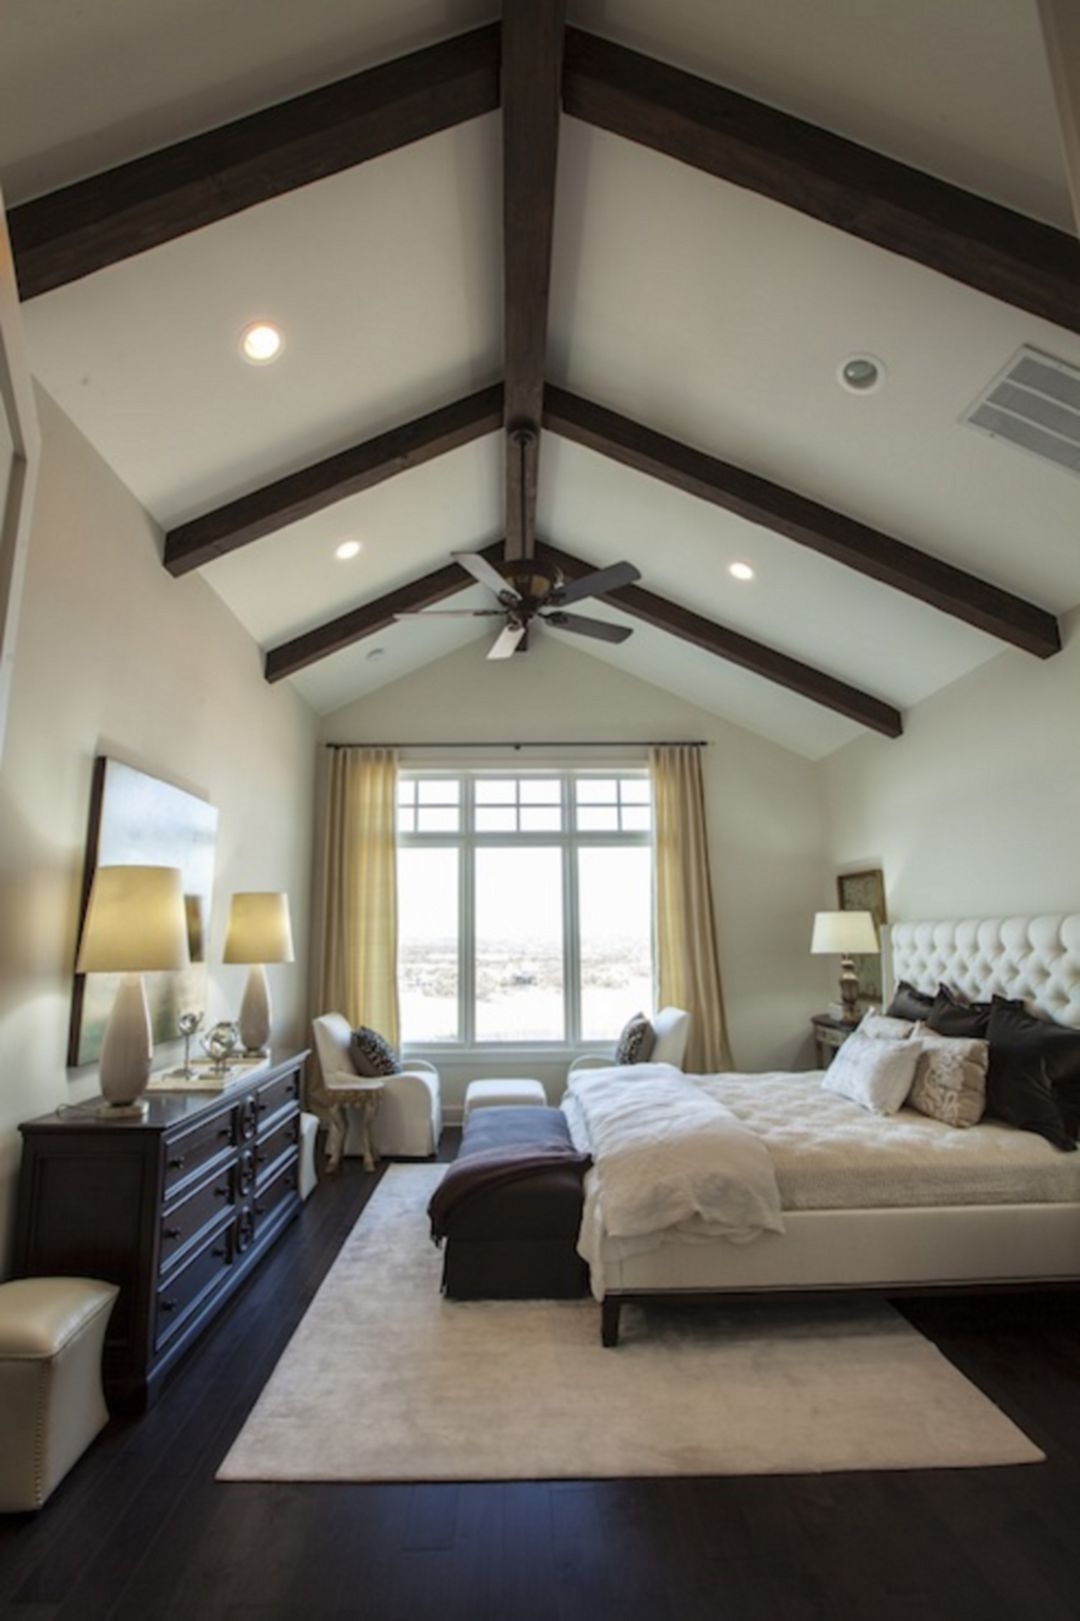 20 Vaulted Ceiling Ideas To Steal From Rustic To Futuristic Master Bedroom Design Bedroom Design Master Bedroom